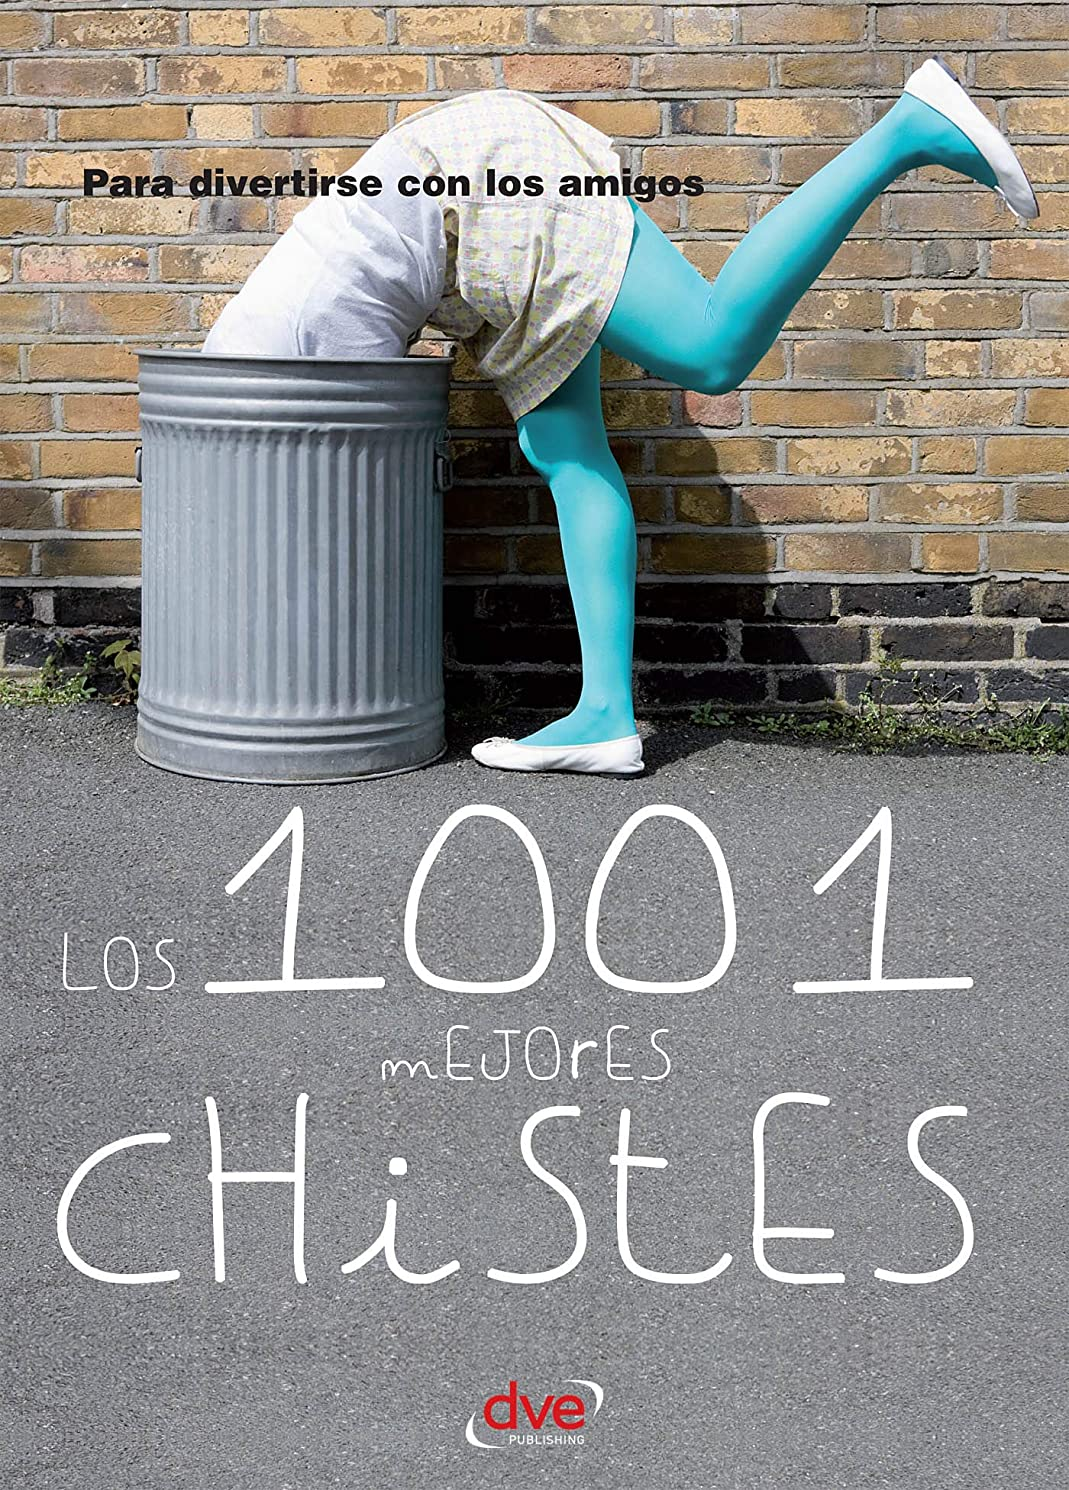 Los 1001 mejores chistes (Spanish Edition)